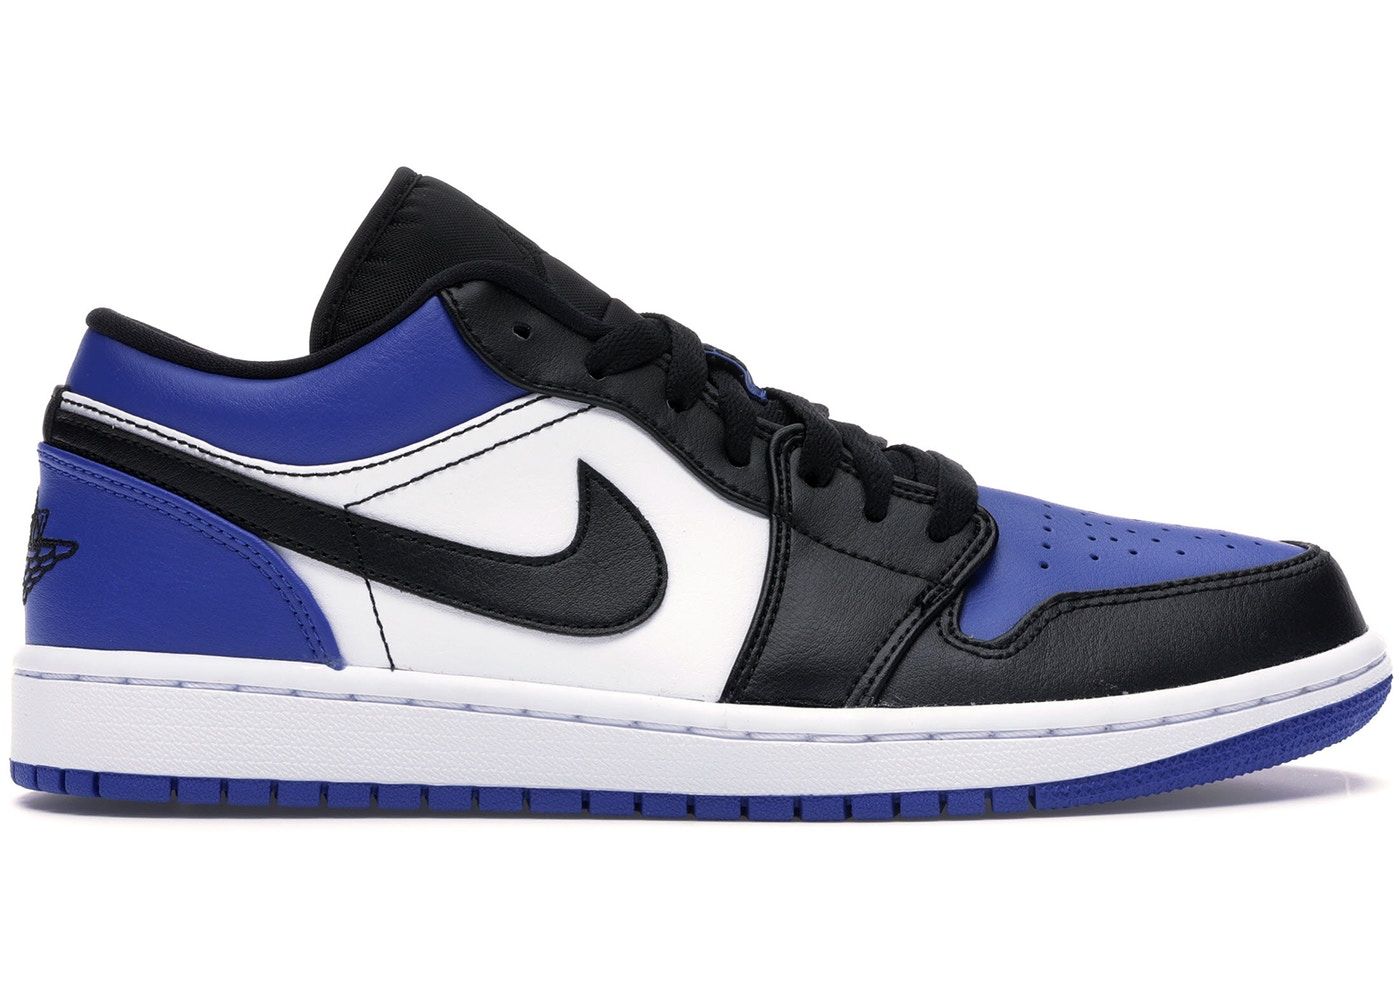 955a0d9c Jordan 1 Low Royal Toe - CQ9446-400